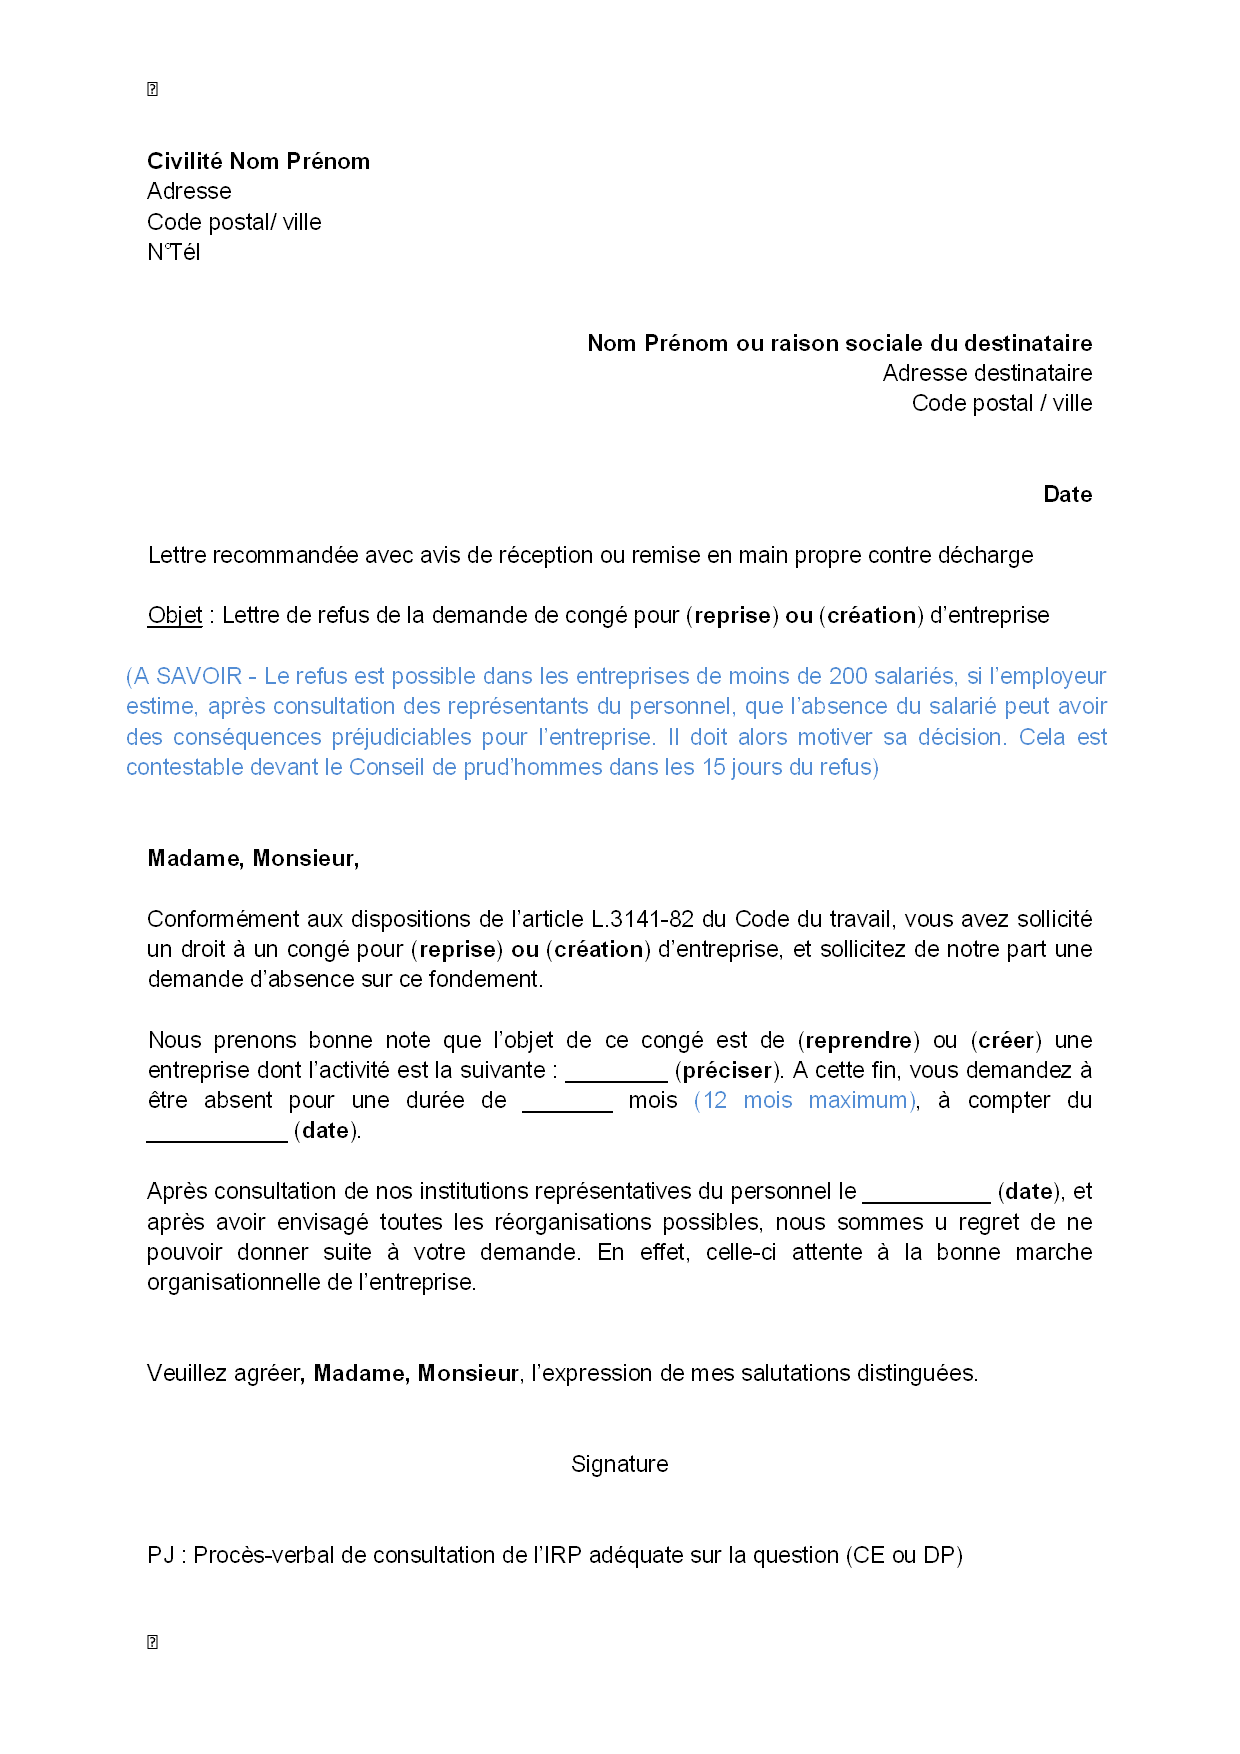 cover letter example  mod u00e8le type lettre de motivation